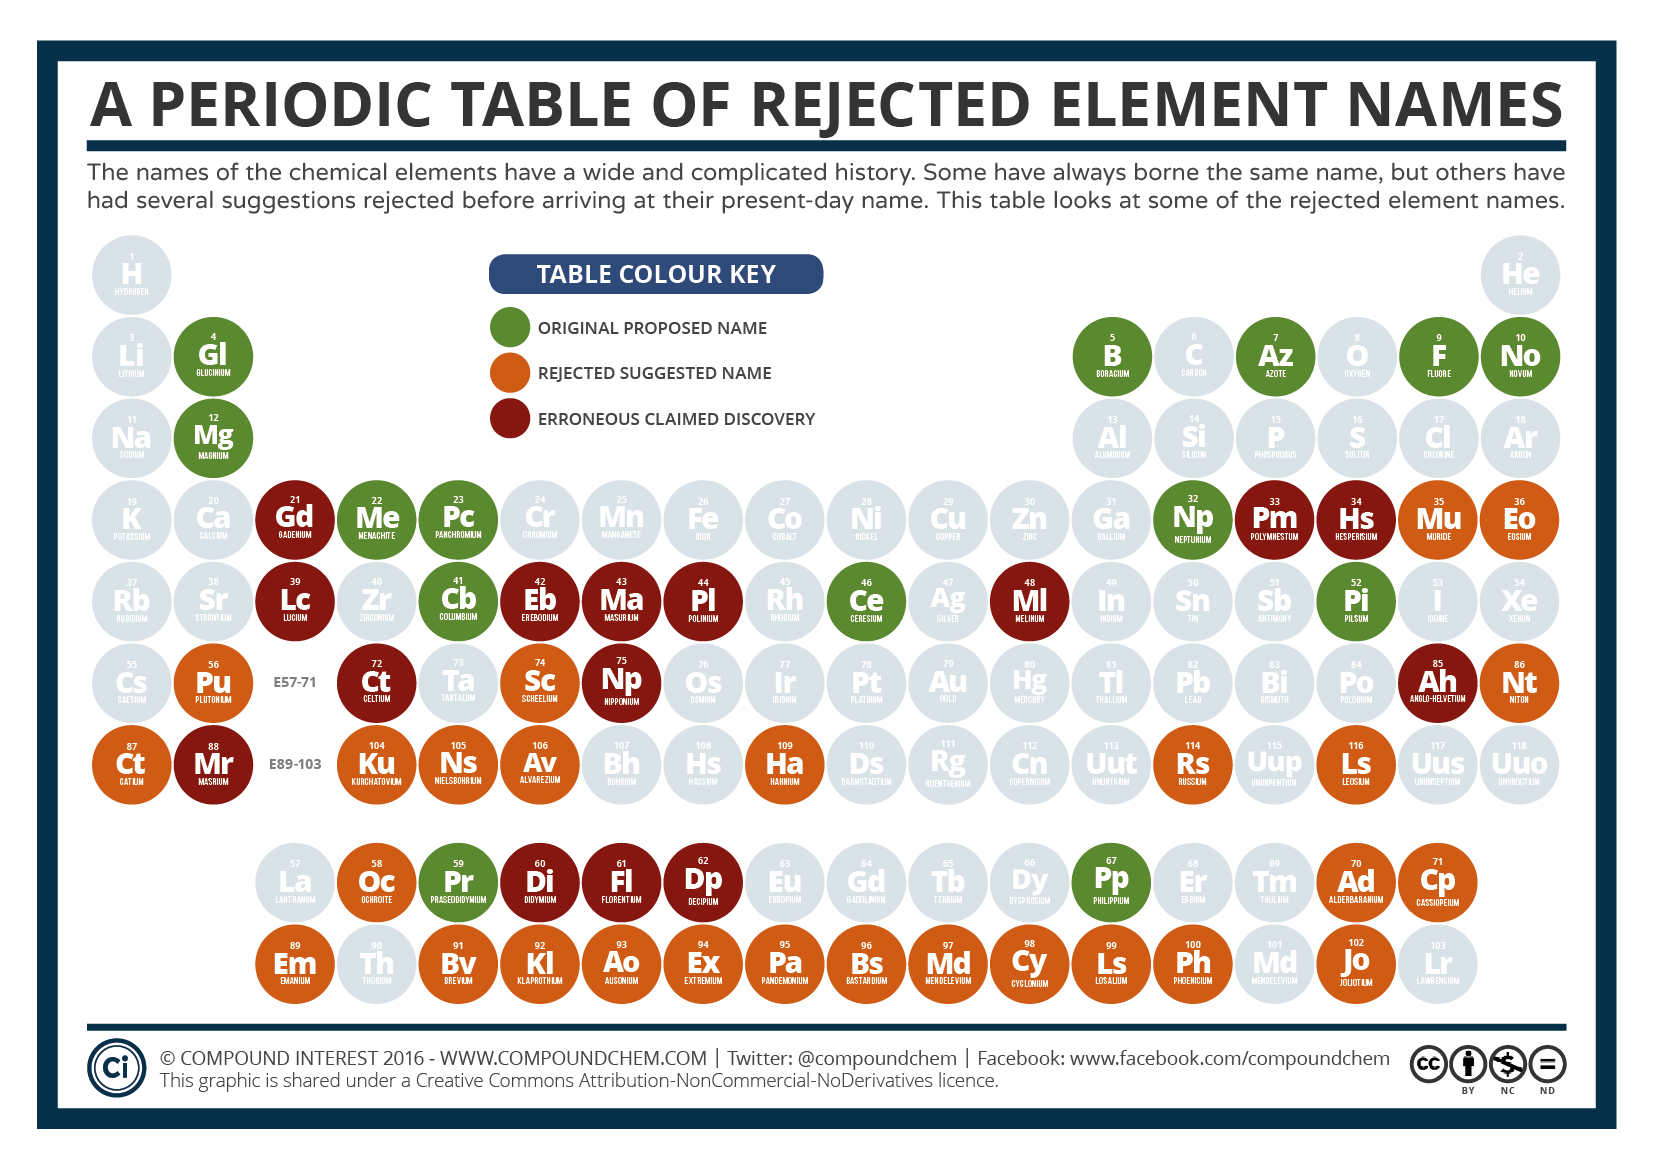 Periodic table of rejected elements science education periodic table of rejected elements gamestrikefo Gallery